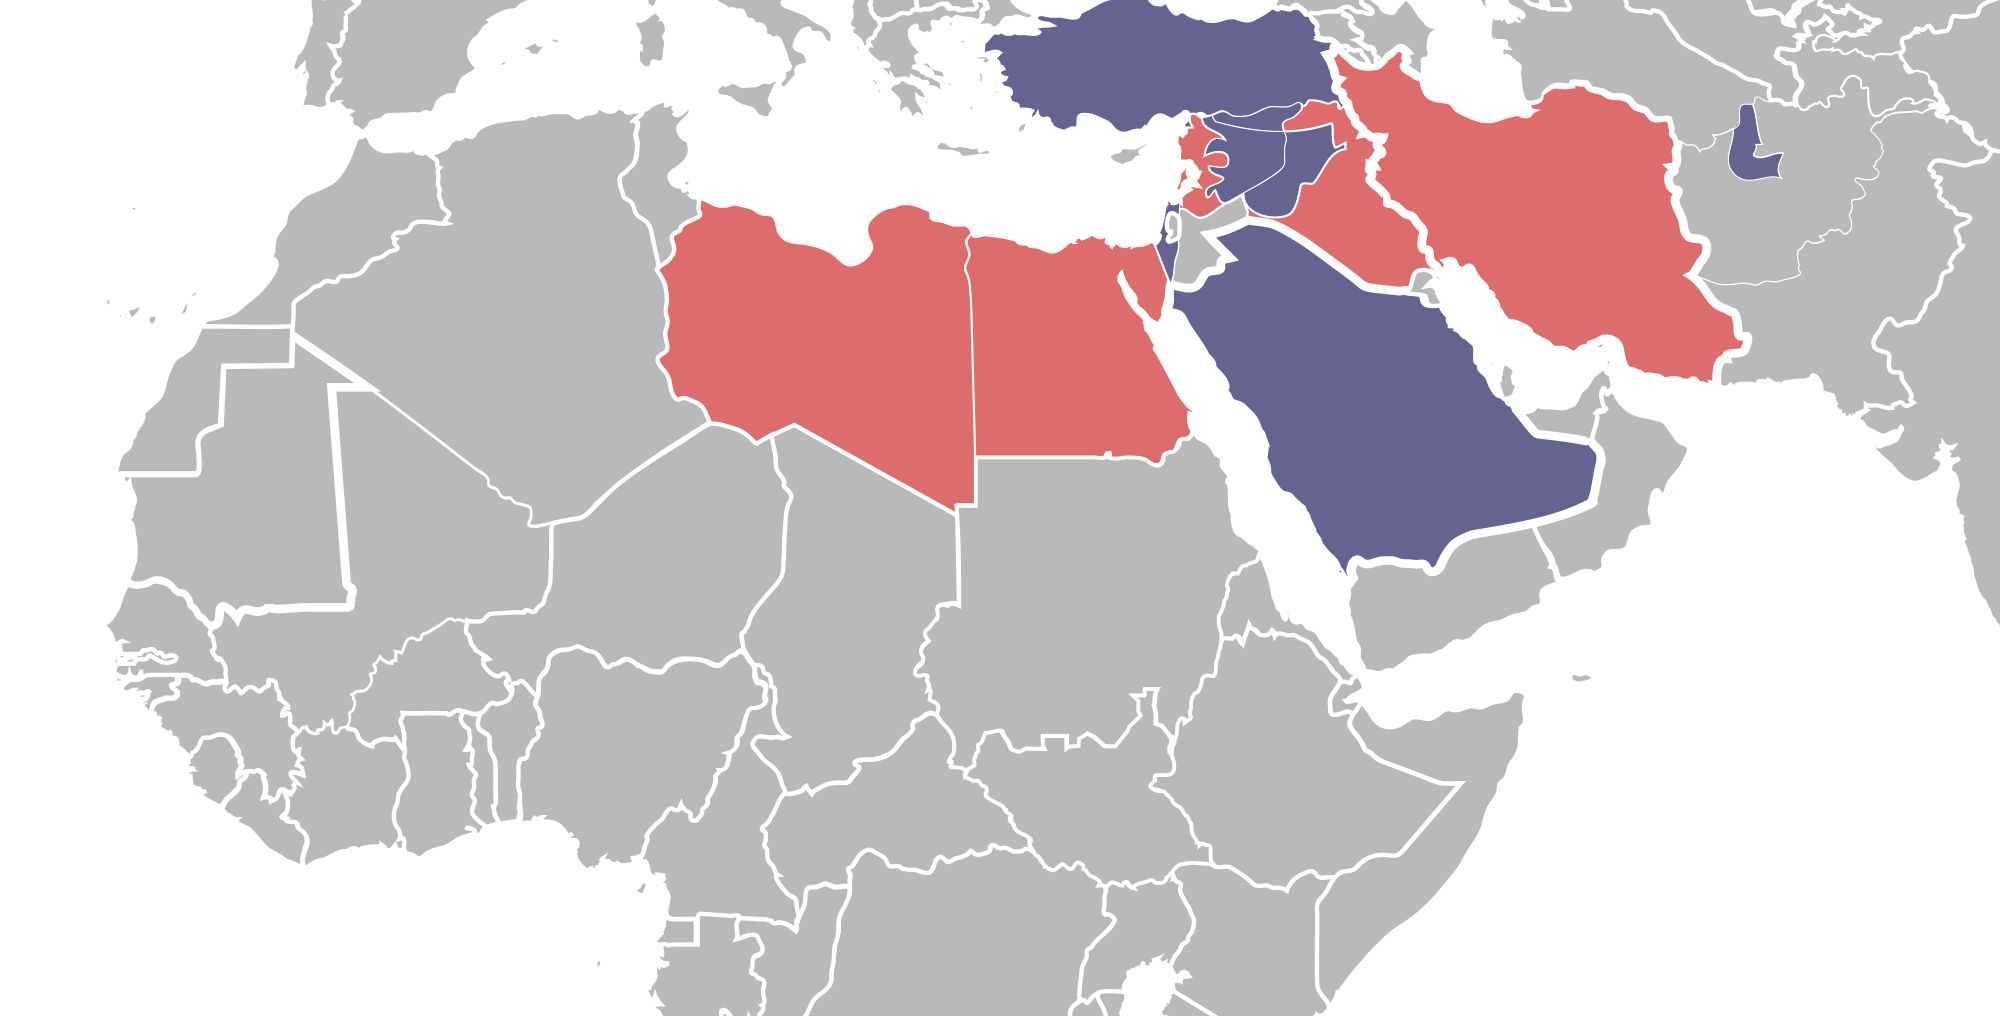 Middle East svg #10, Download drawings